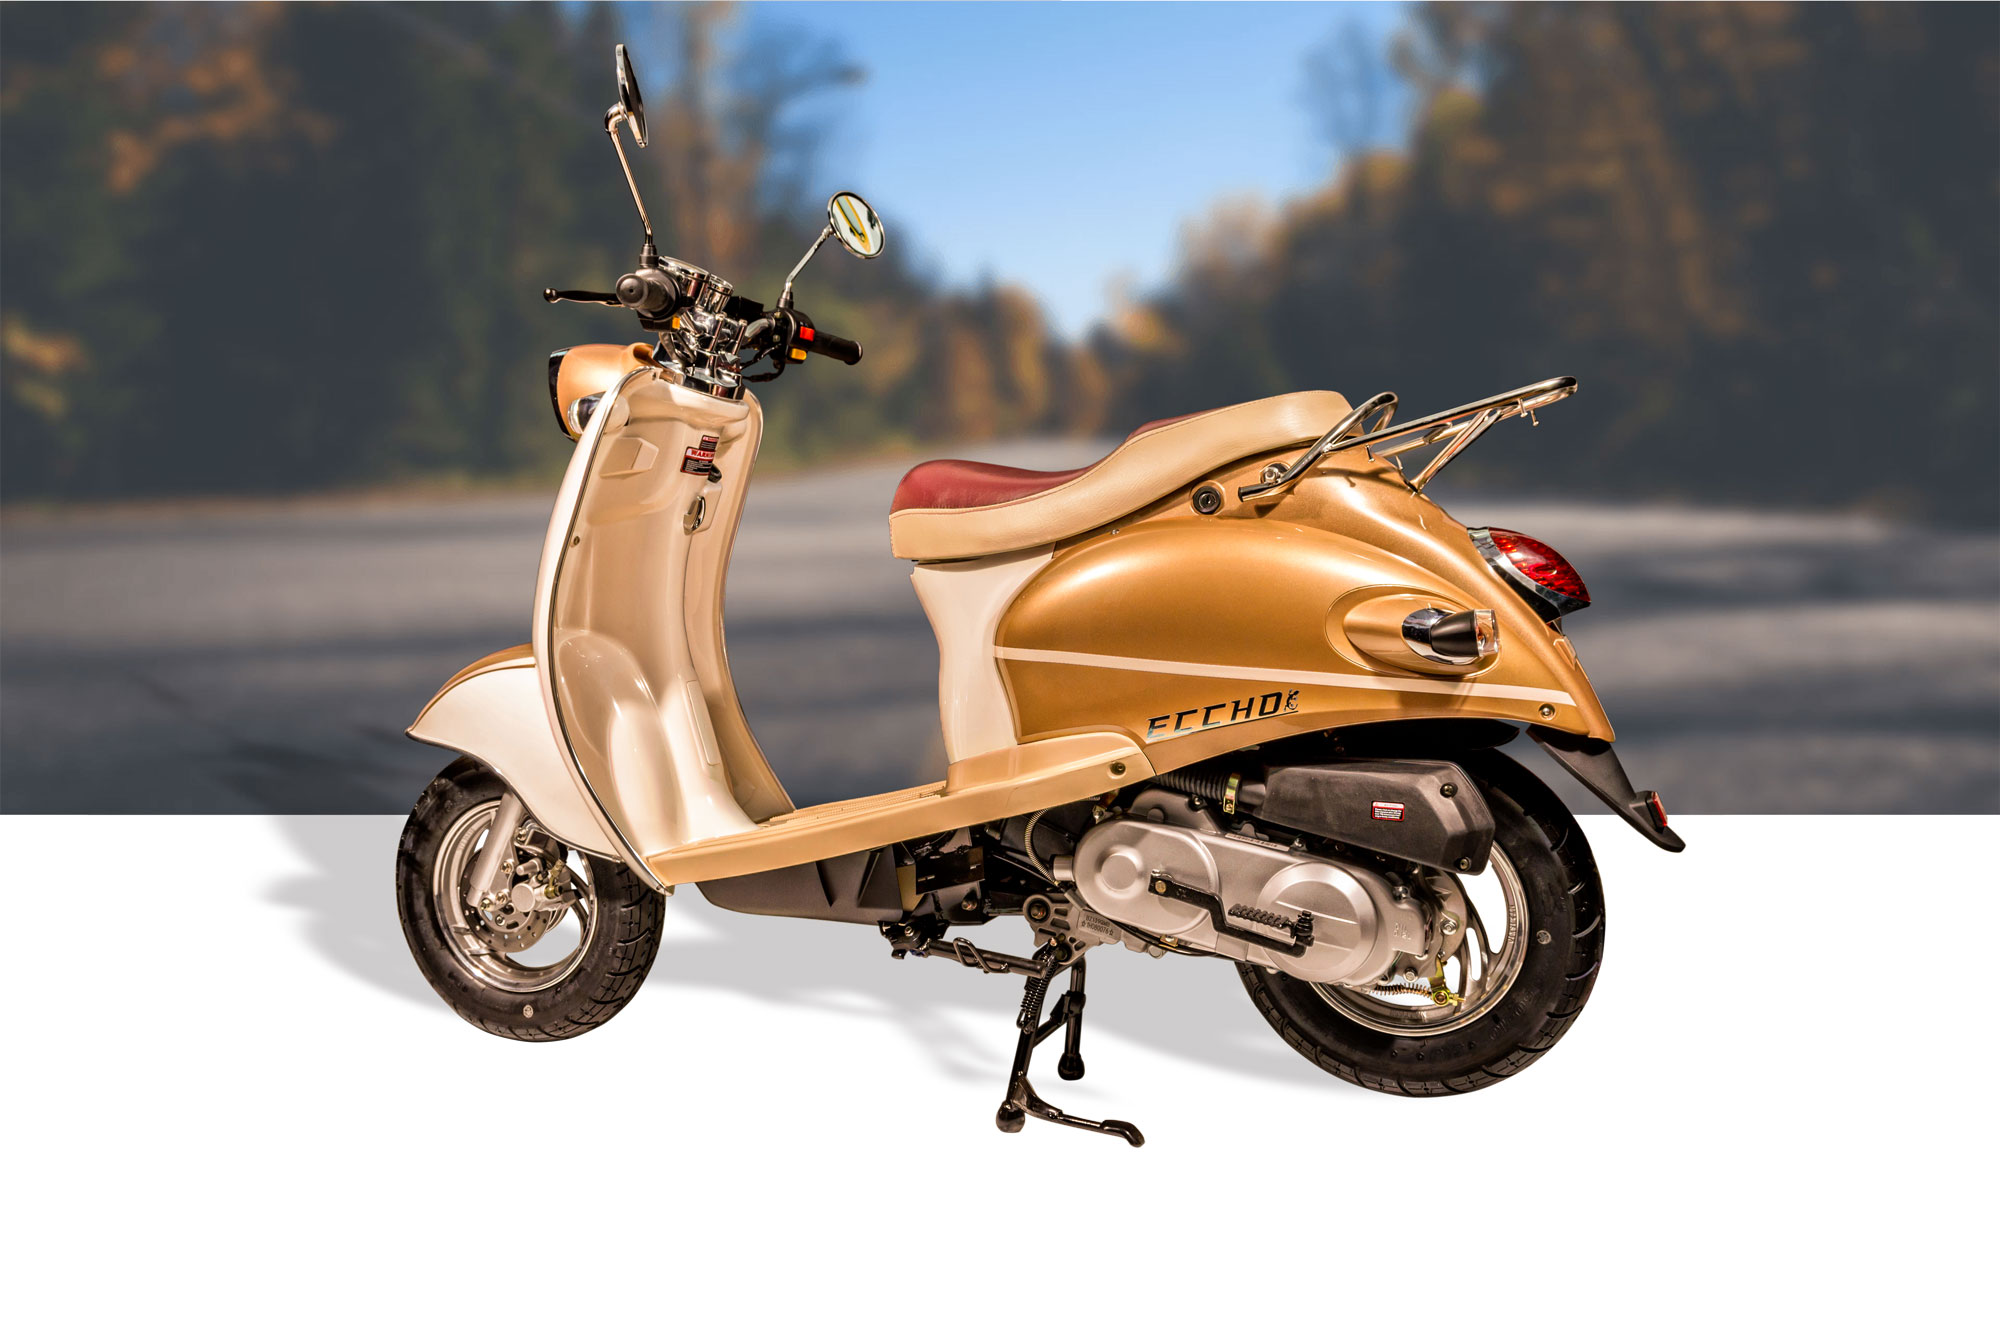 SCOOTER-50-ECCHO-RETRO-50-GOLD-II-EFI-10